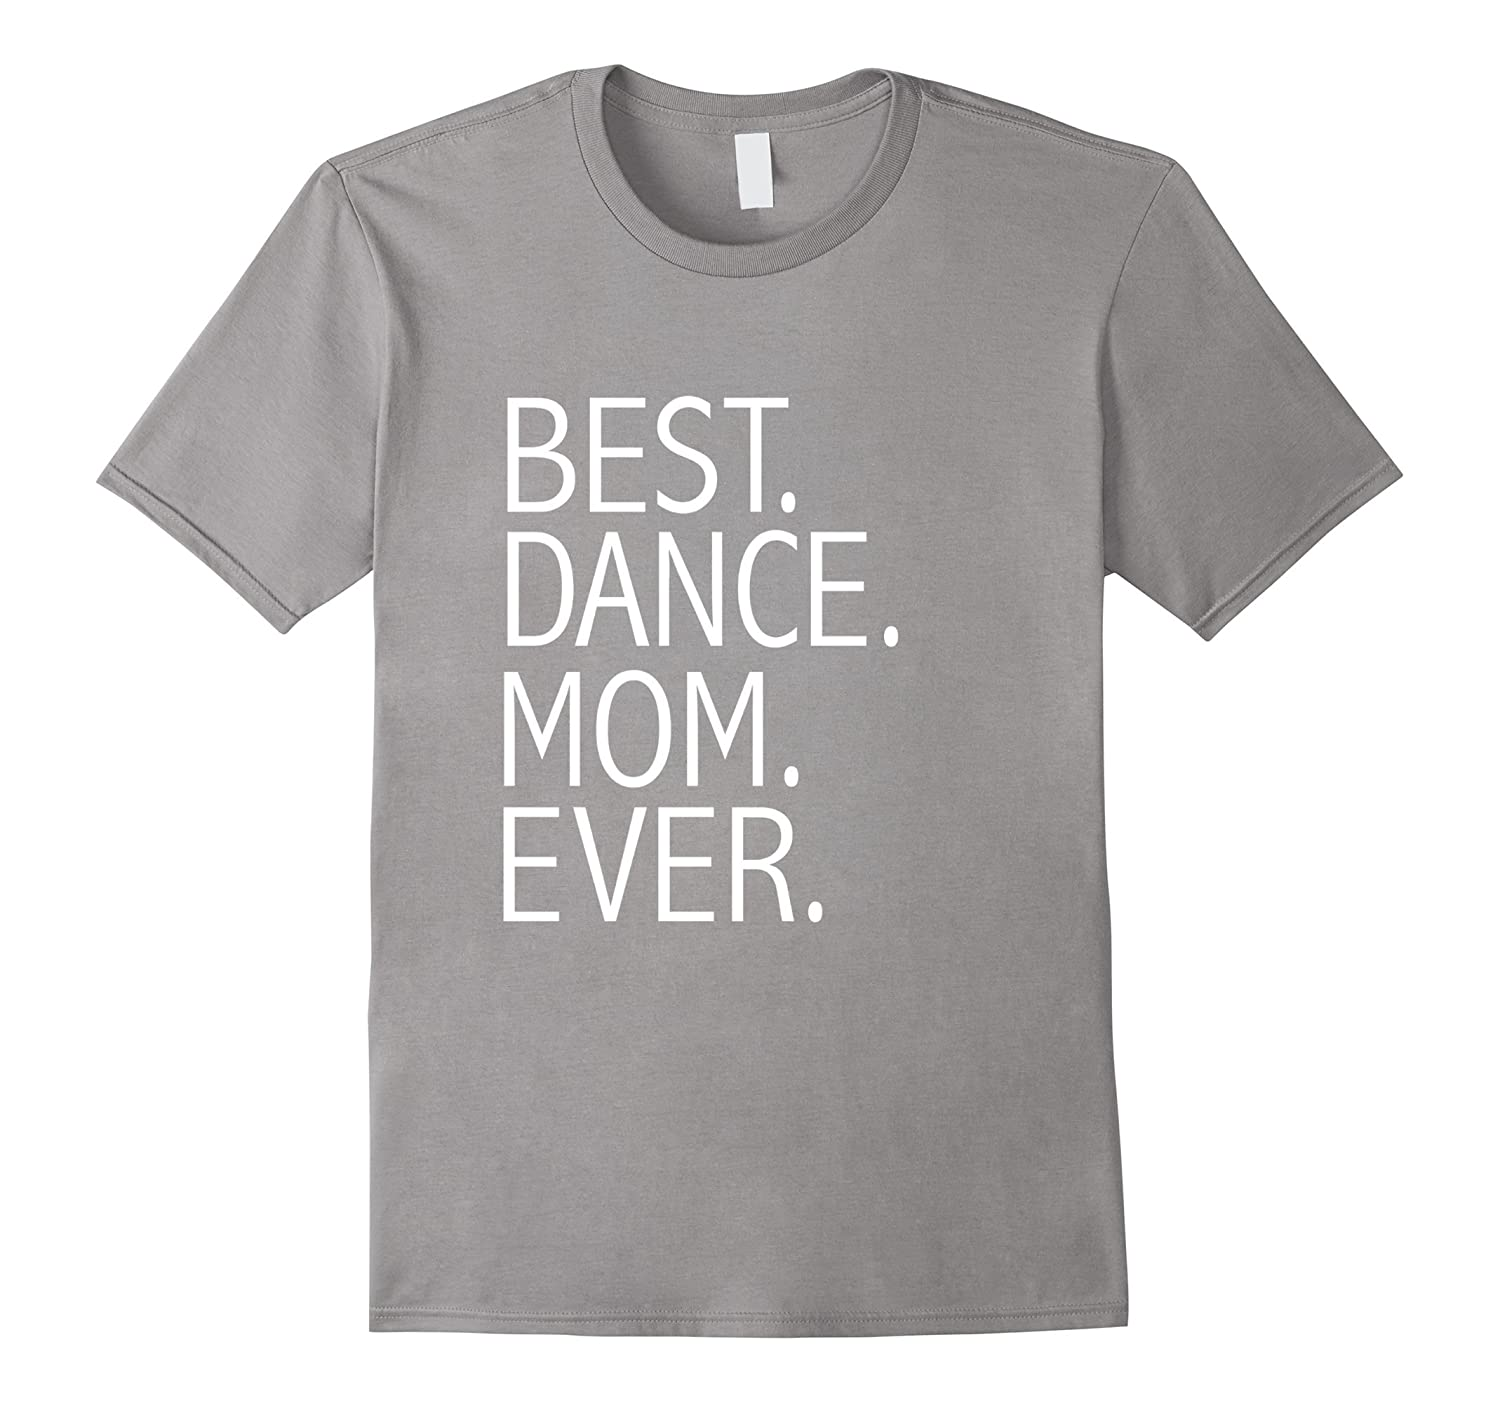 Best dance mom ever funny t shirt mothers day gift rt for Best gifts to give mom